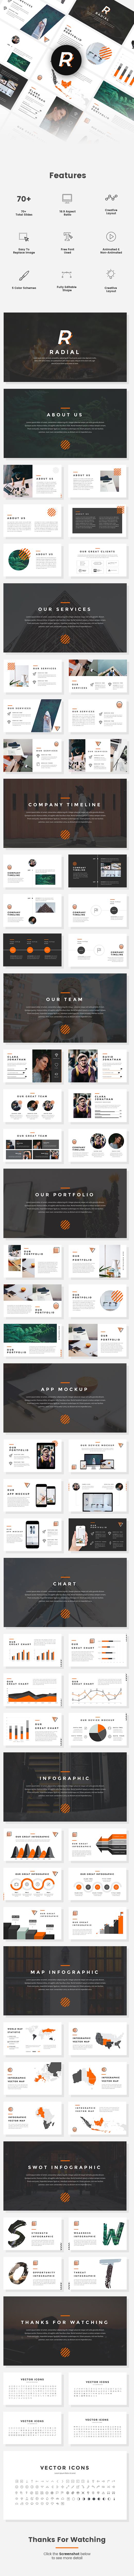 Radial - Creative Keynote Template - Creative Keynote Templates